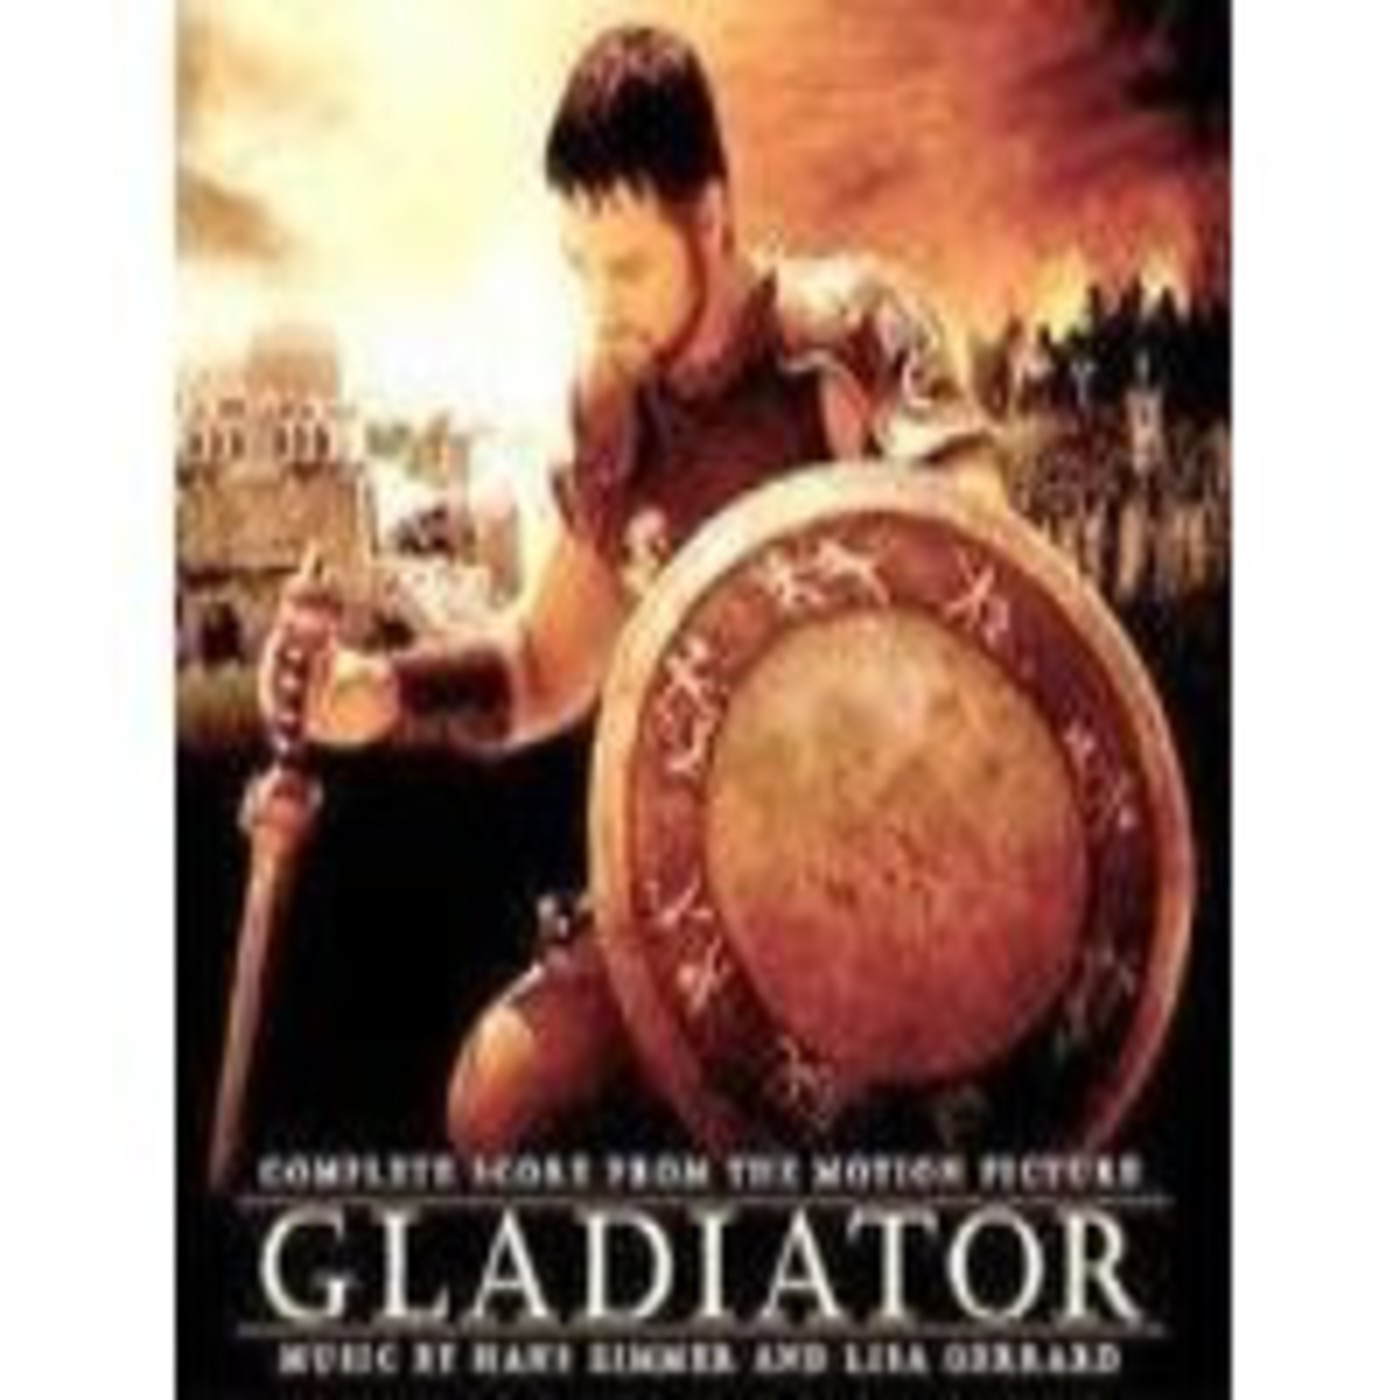 Now we are free bso gladiator en musicas milenio 3 y for Oir cuarto milenio